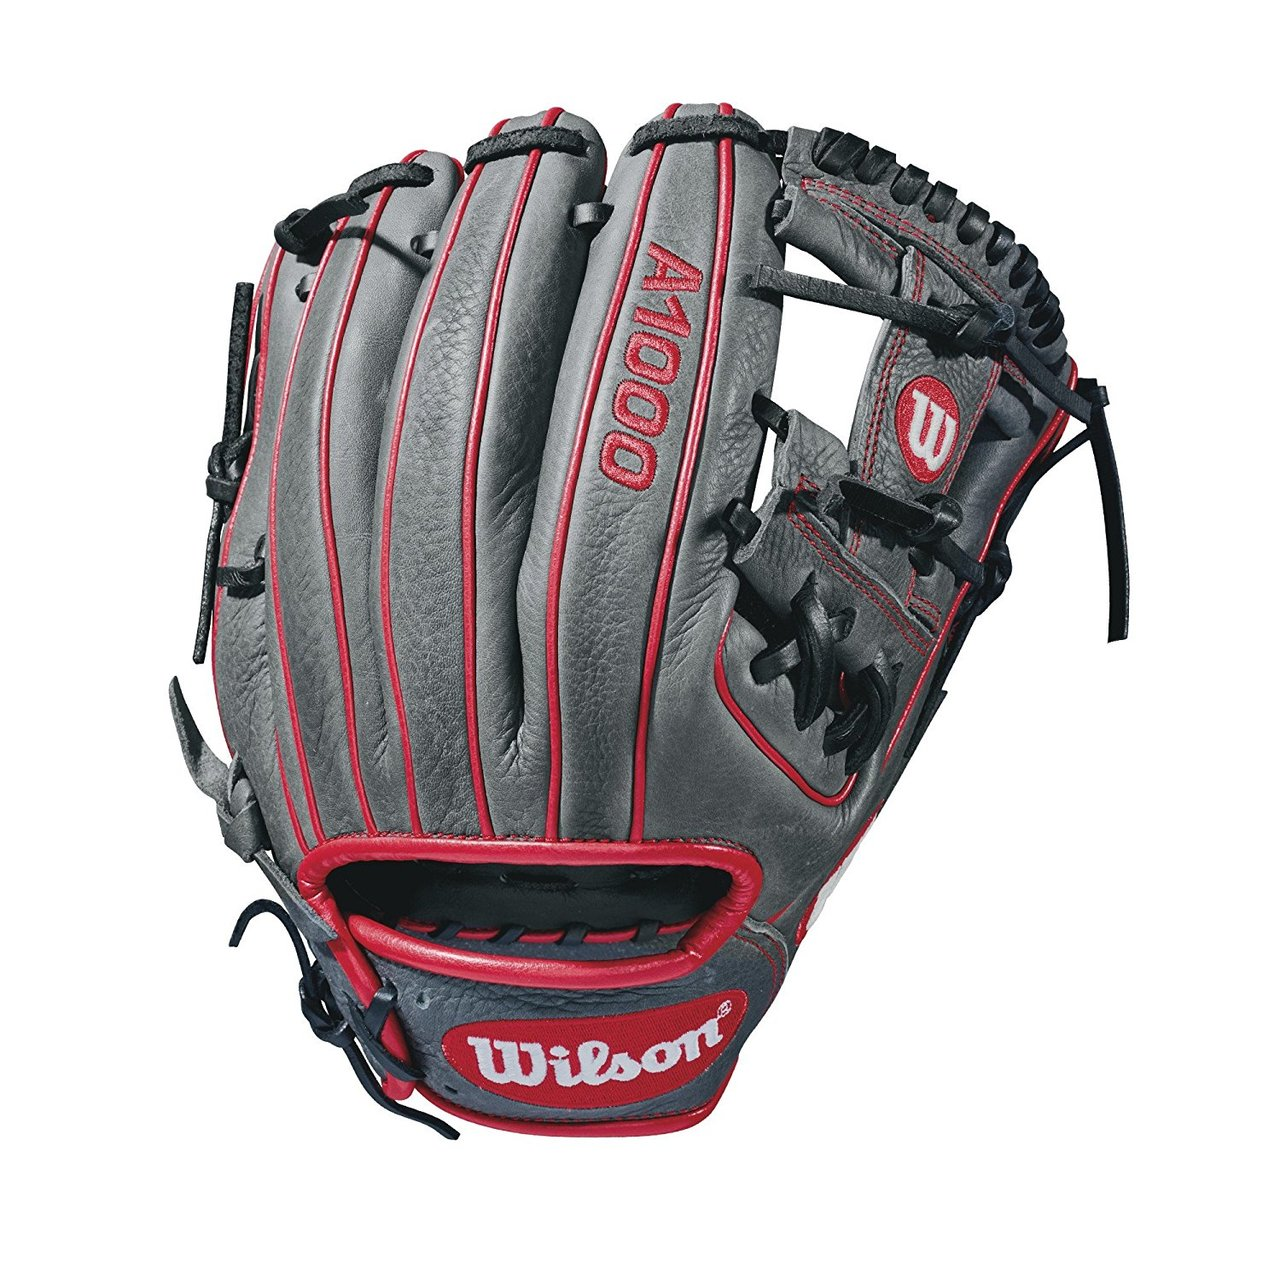 wilson-2018-a1000-1786-baseball-glove-11-5-right-hand-throw WTA10RB181786-RightHandThrow Wilson 887768614805 The 11.5 Wilson A1000 glove is made with the same innovation